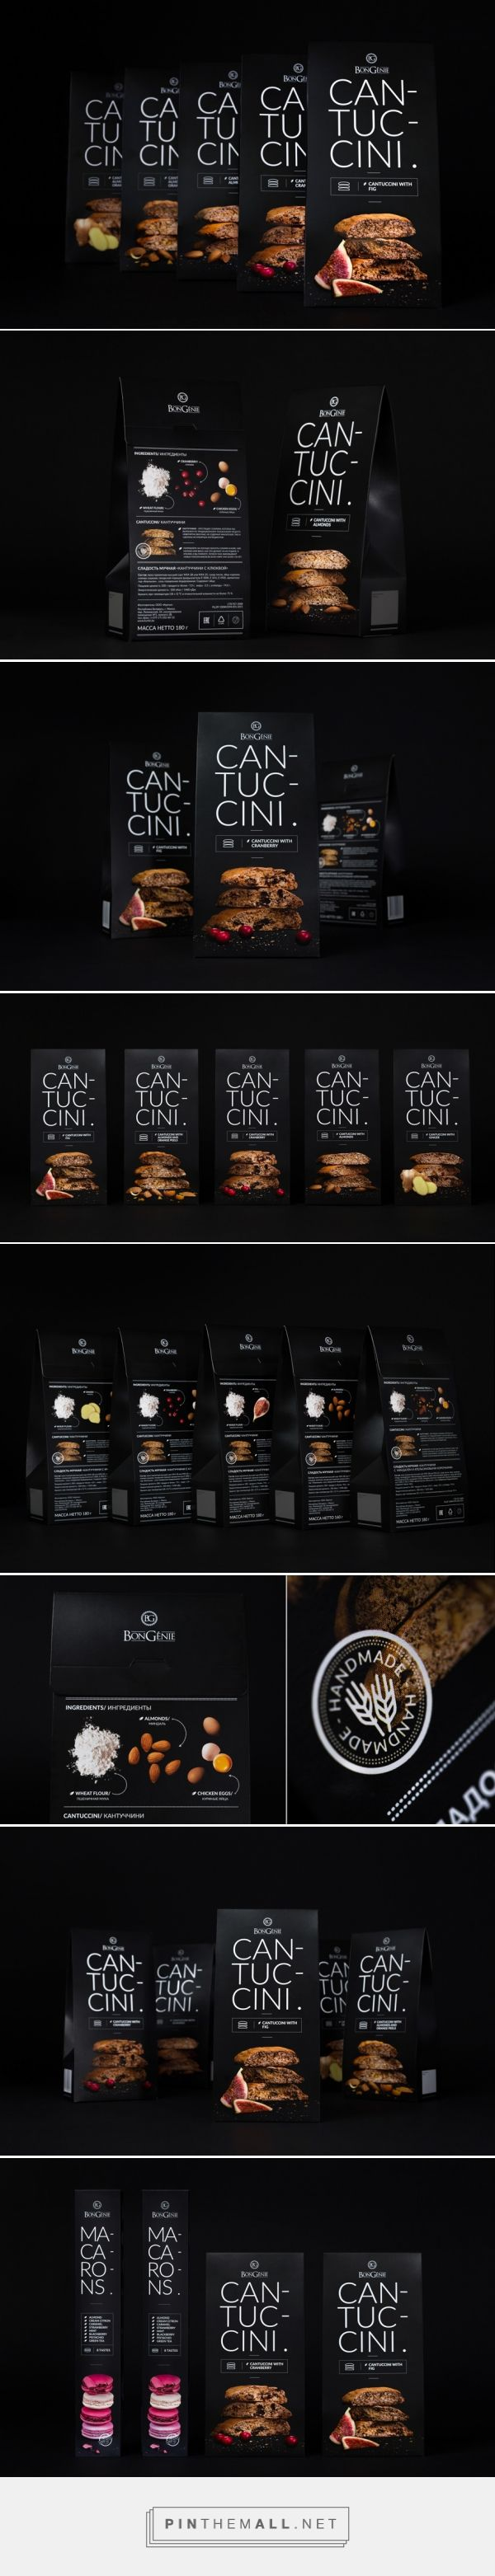 Cantuccini packaging on Behance by Fabula Branding Minsk, Belarus curated by Packaging Diva PD. Premium design of hand-made cantuccini (biscotti) for TM BonGenie.